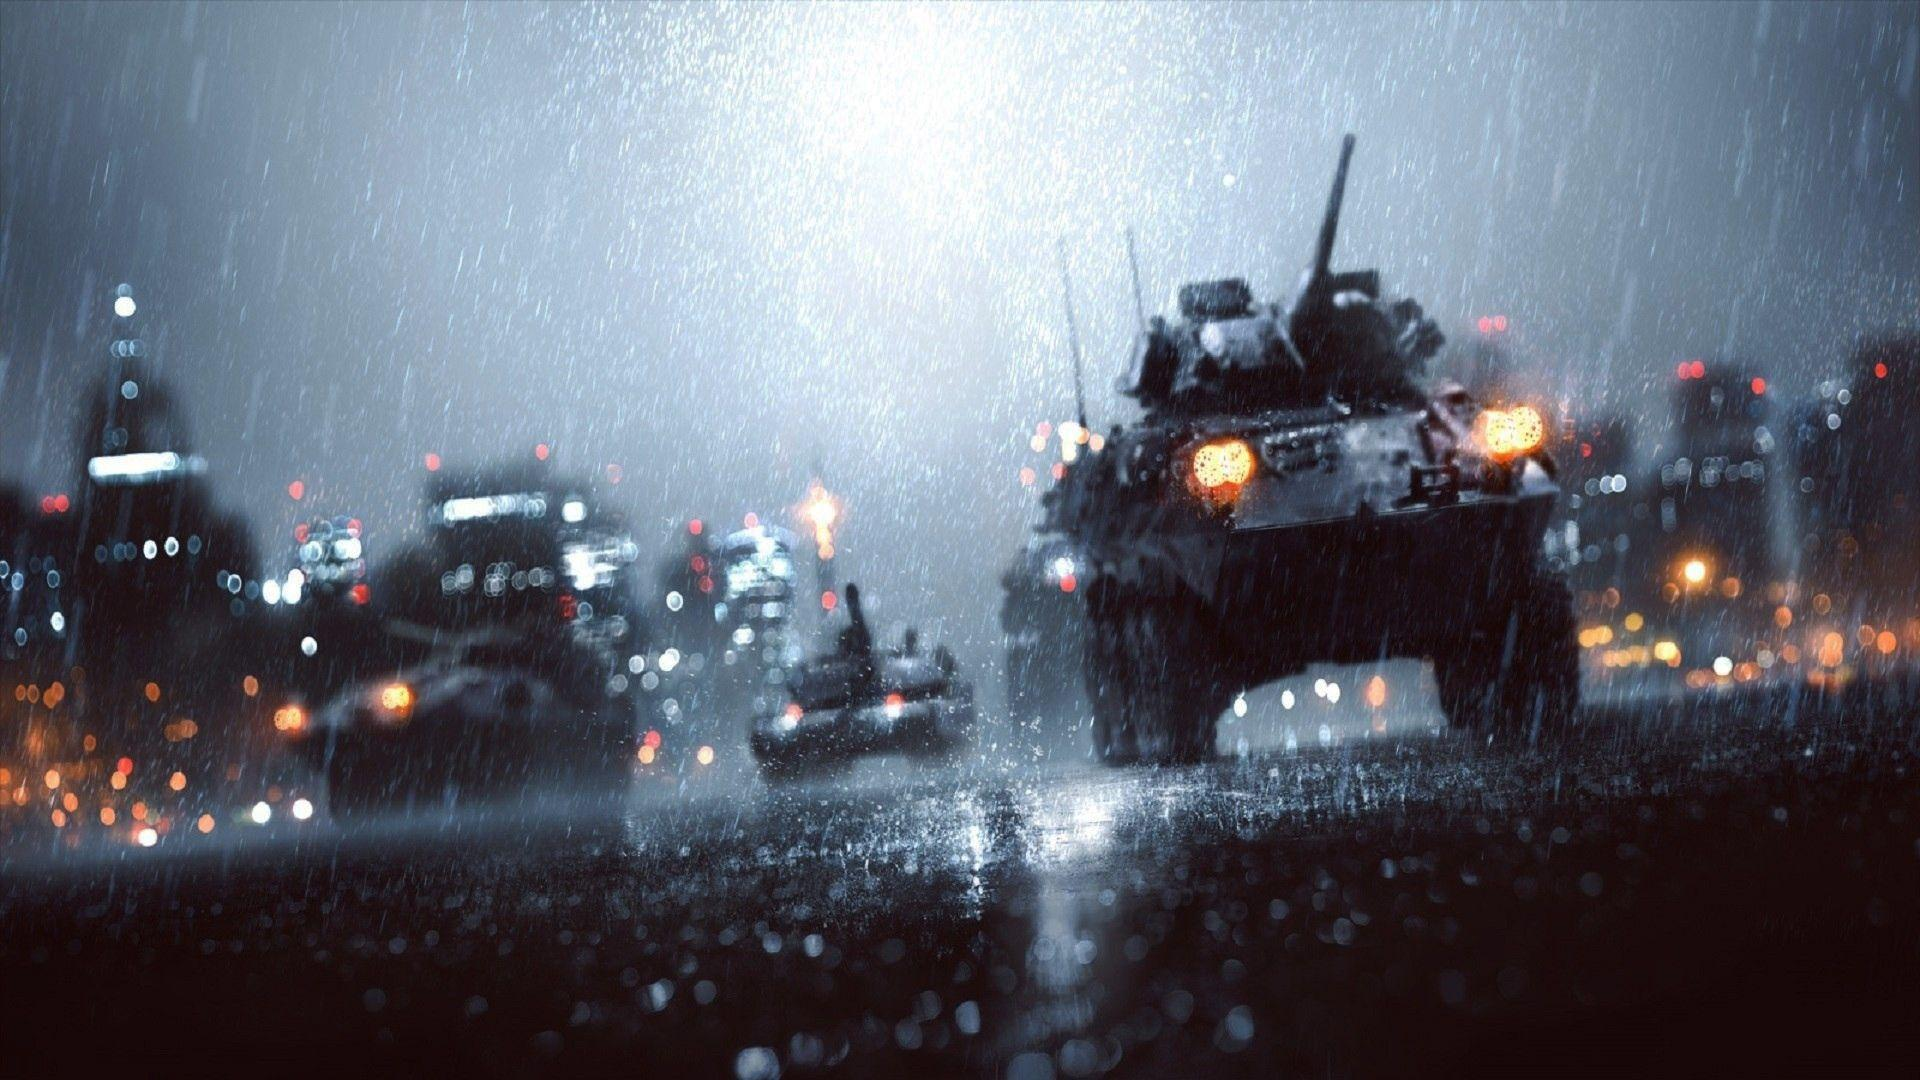 106 Battlefield 4 Wallpapers | Battlefield 4 Backgrounds